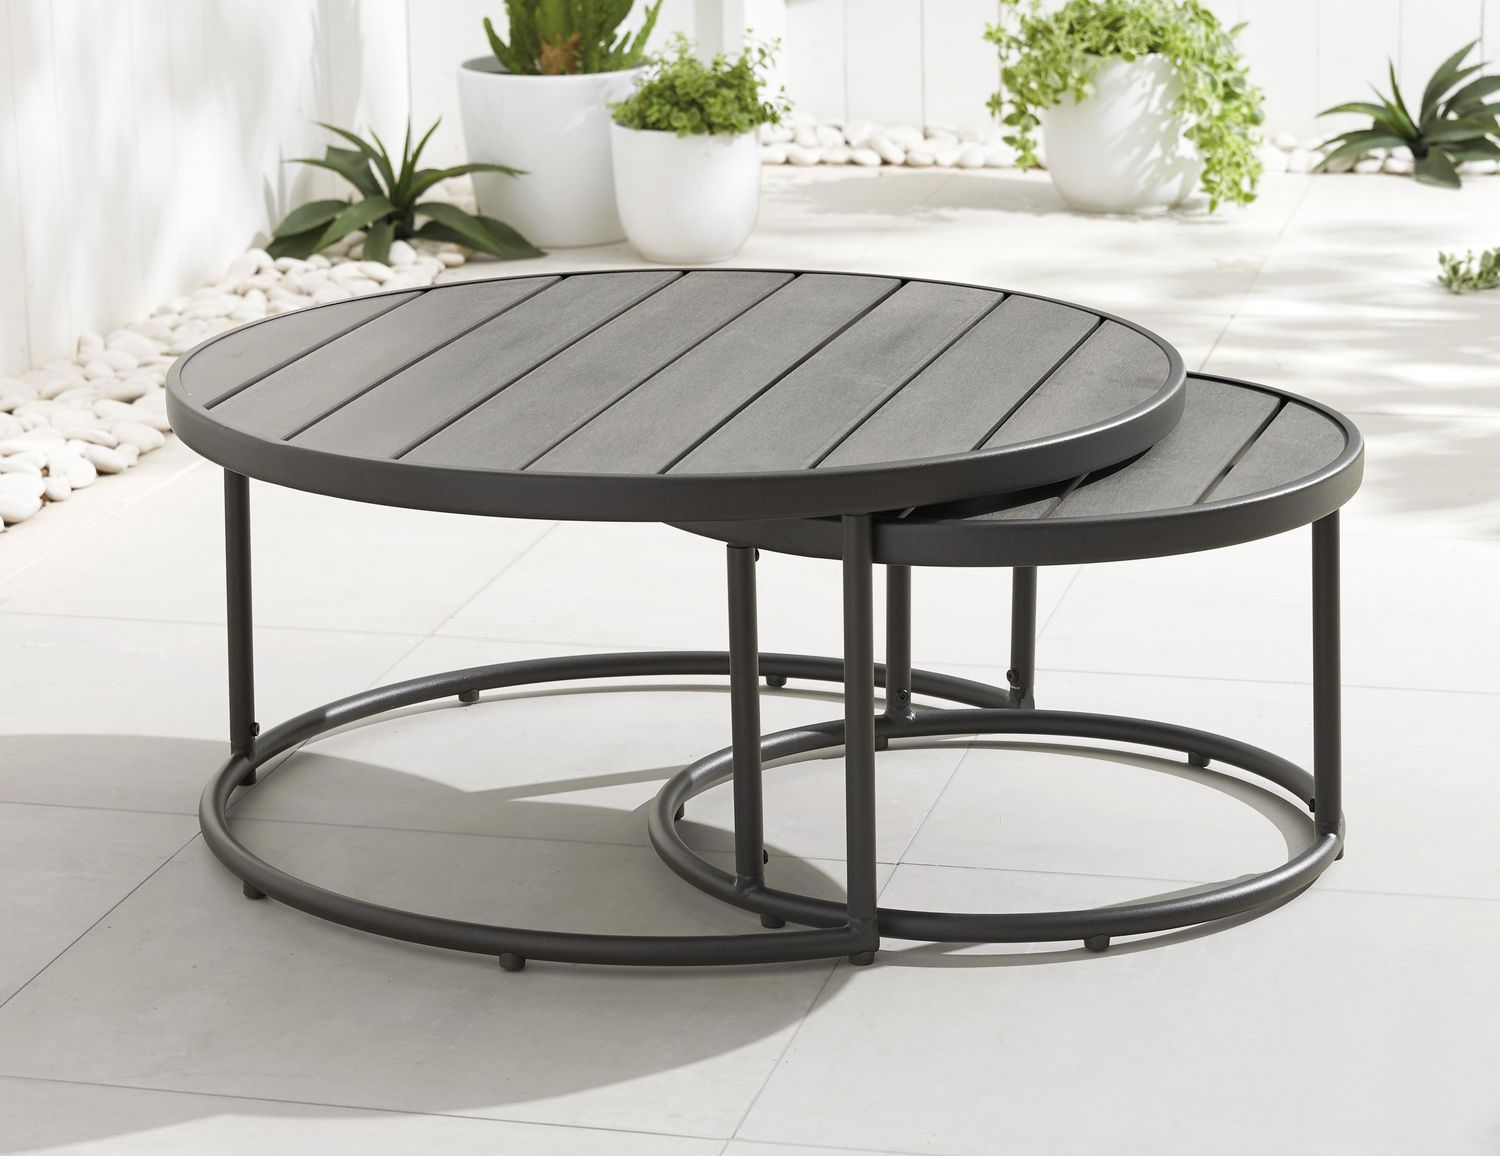 Hometrends 2 Pack Endurowood Nesting Tables Walmart Canada In 2020 Nesting Tables Table Outdoor Tables